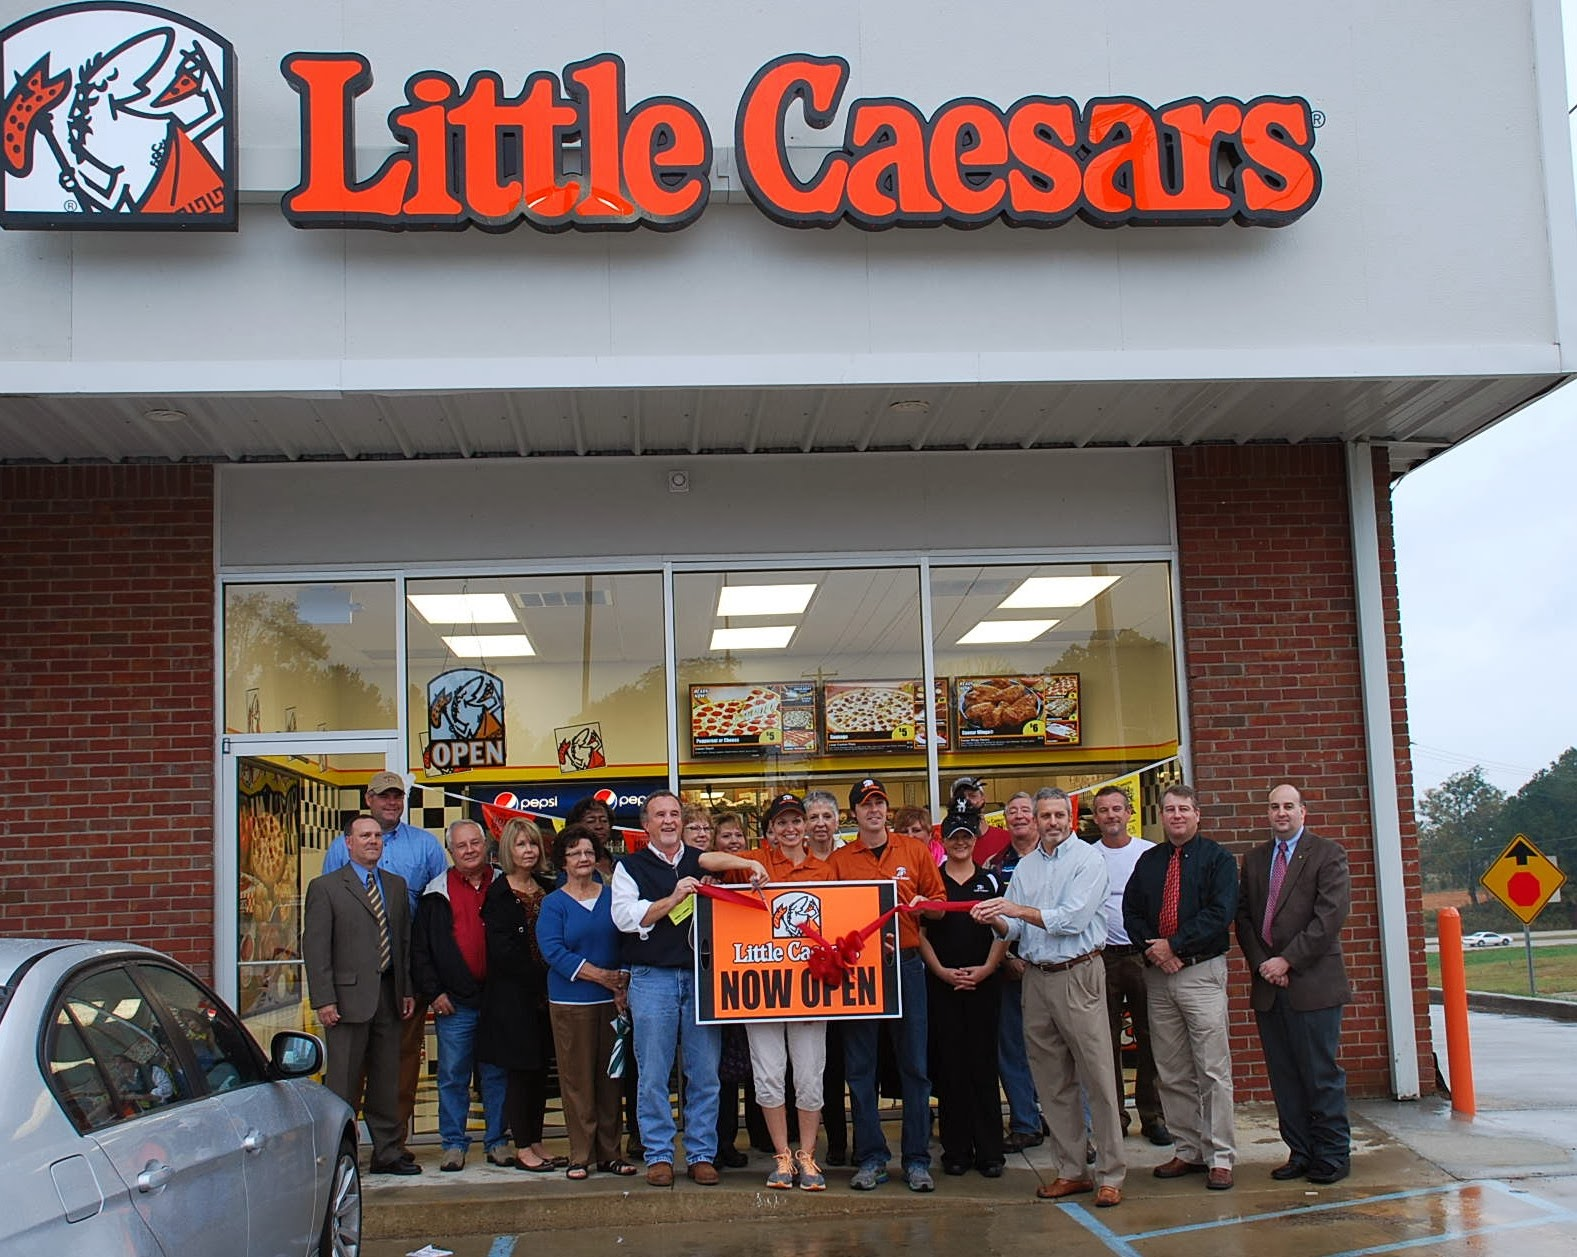 Get directions, reviews and information for Little Caesars in Louisville, KY.7/10(8).